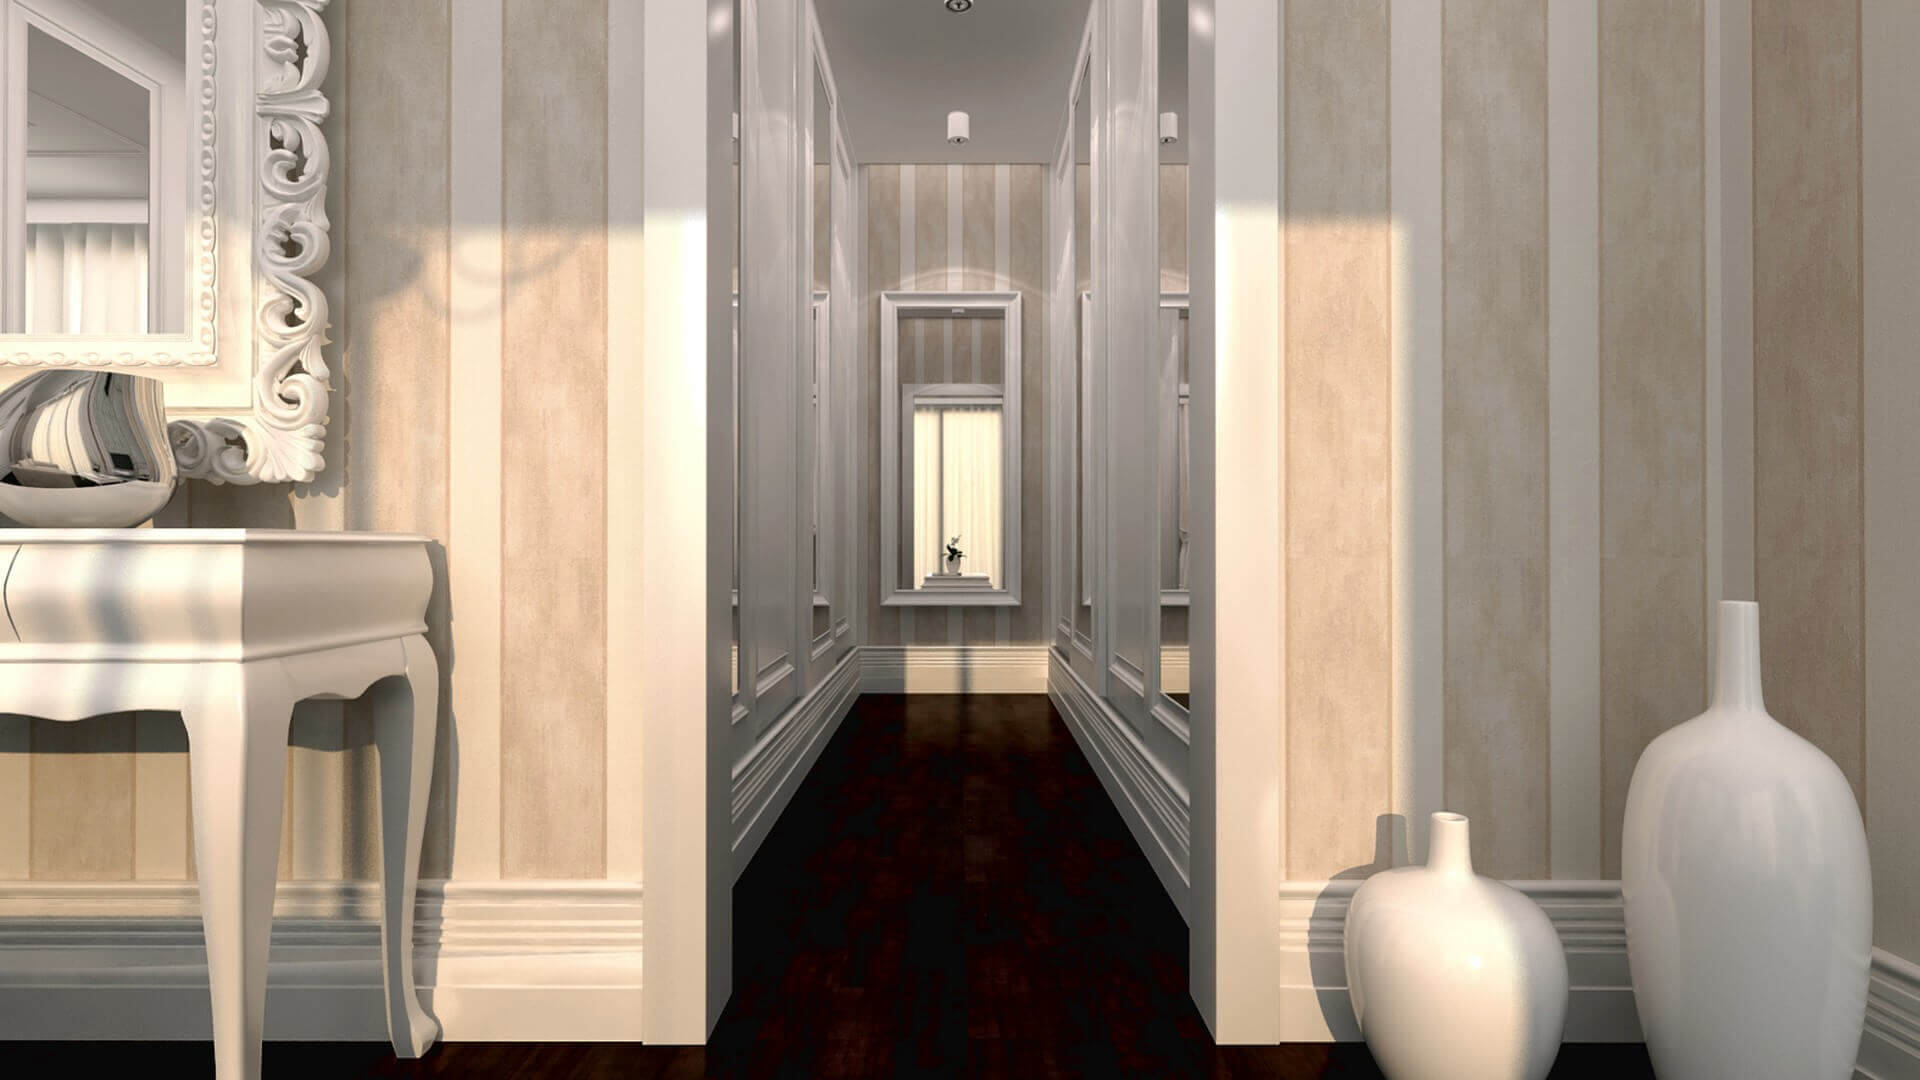 Ankorman Evleri 2869 Private Project Residential